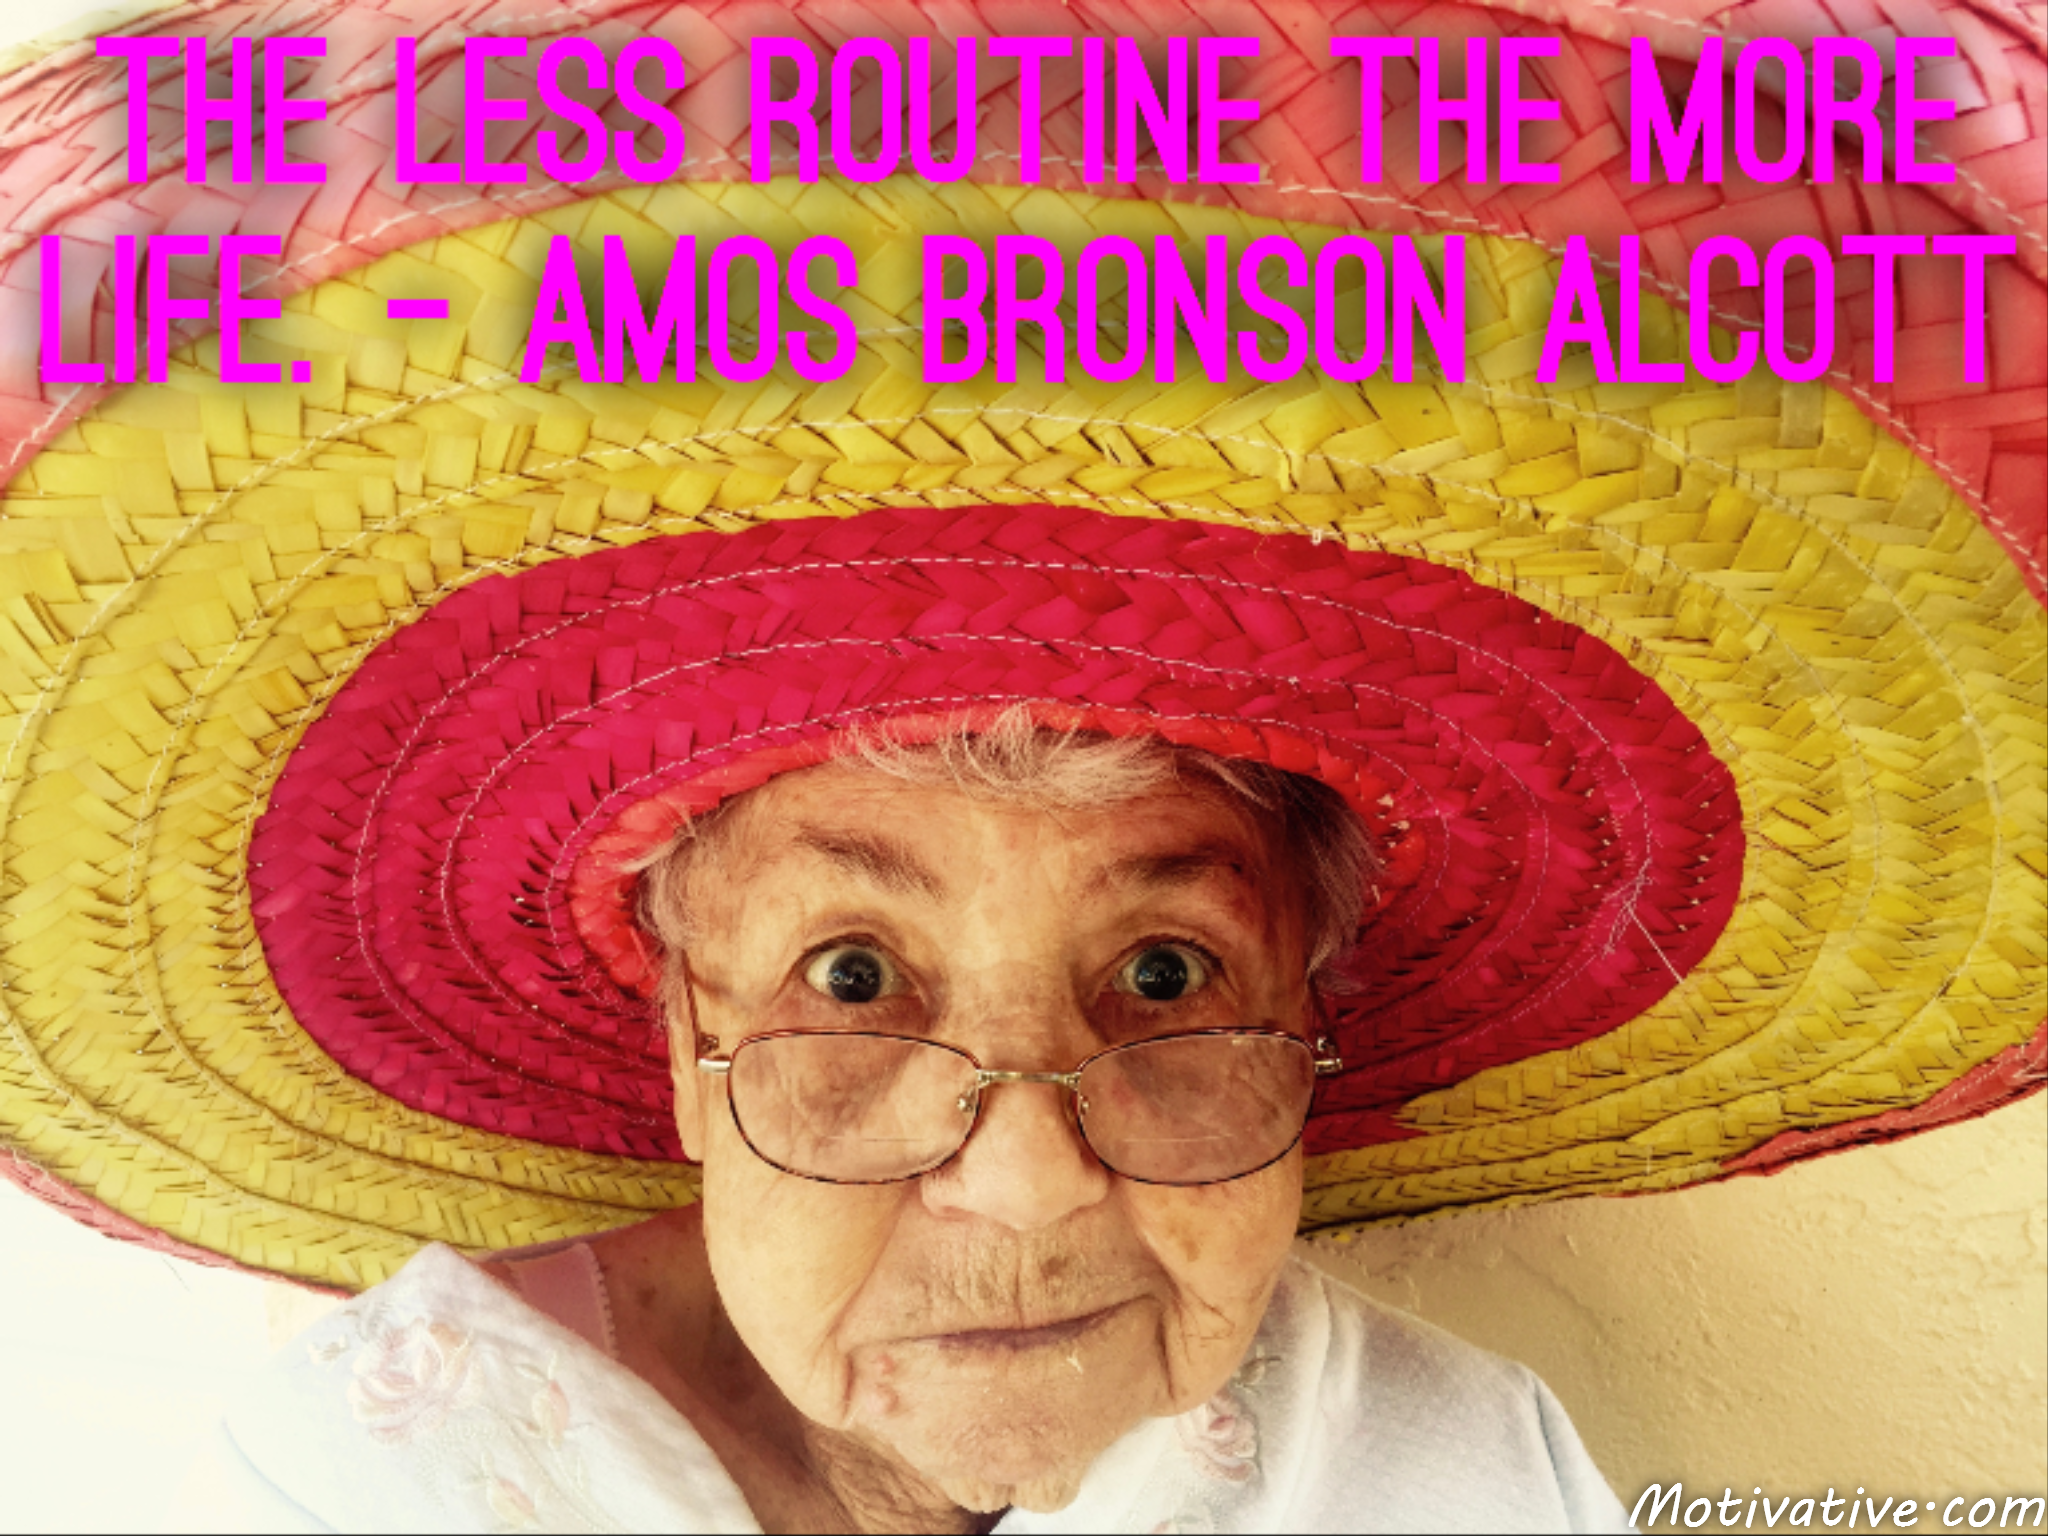 The less routine the more life. – Amos Bronson Alcott